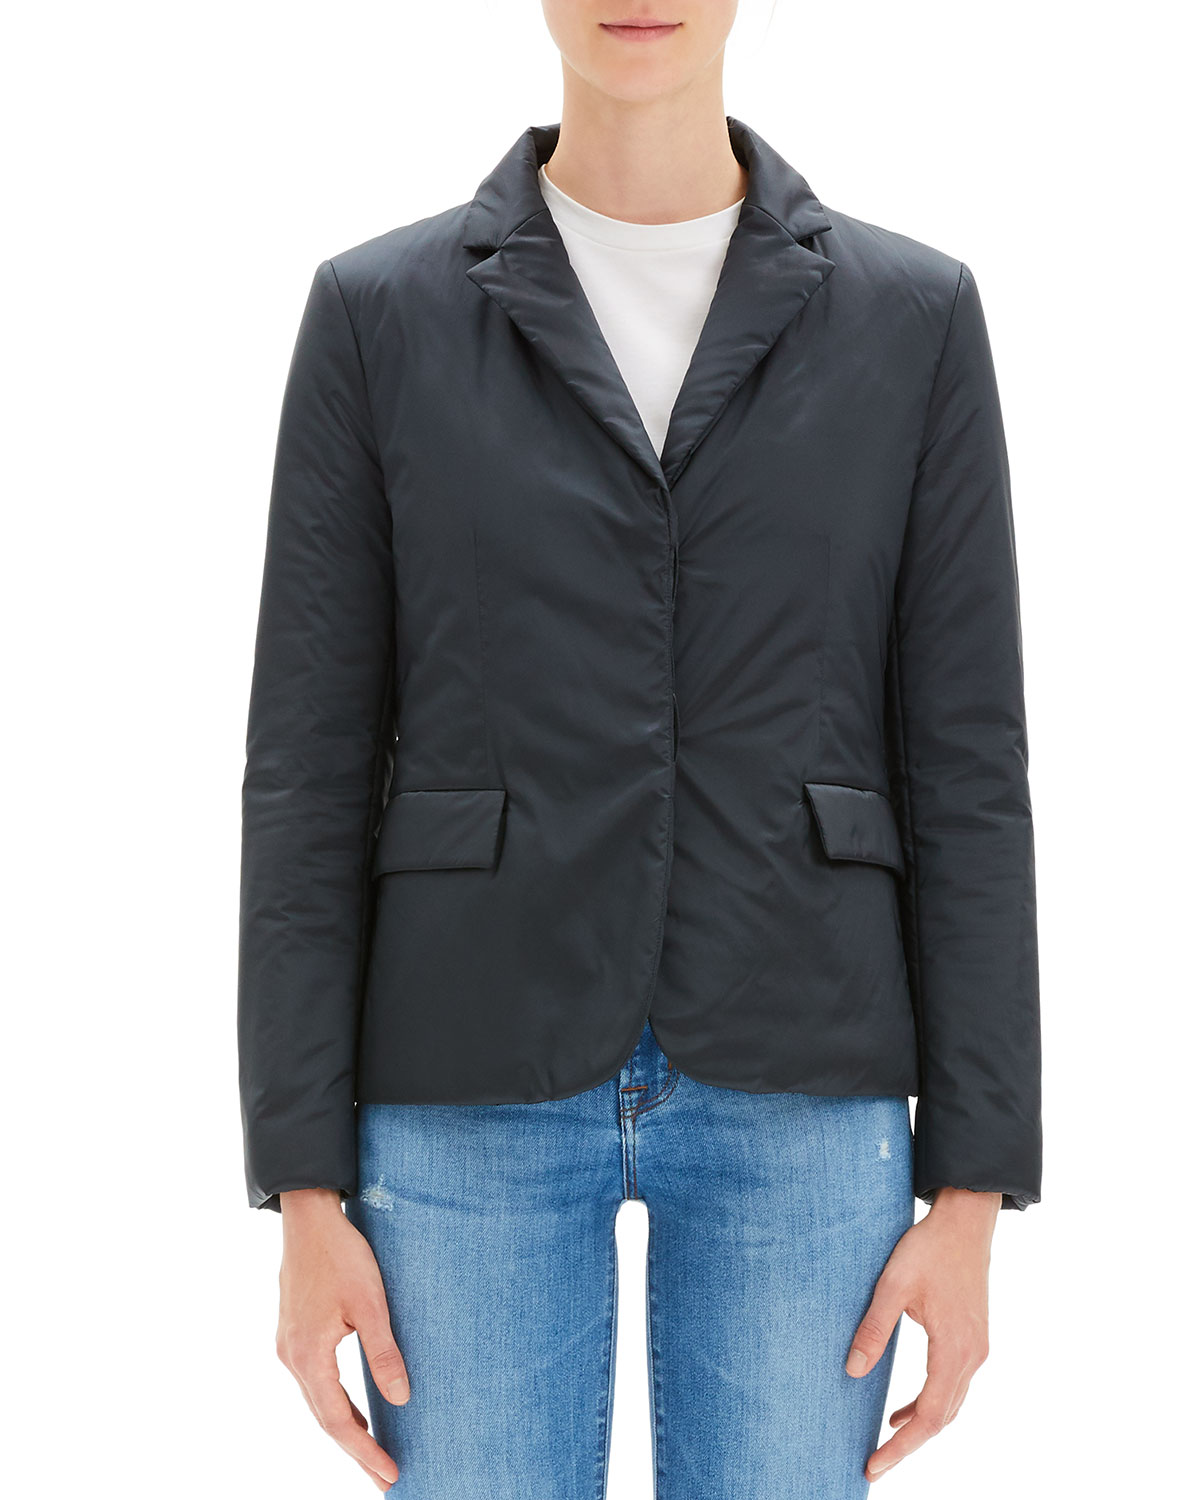 THEORY Button-Front Blazer Puffer Jacket in Pale Navy